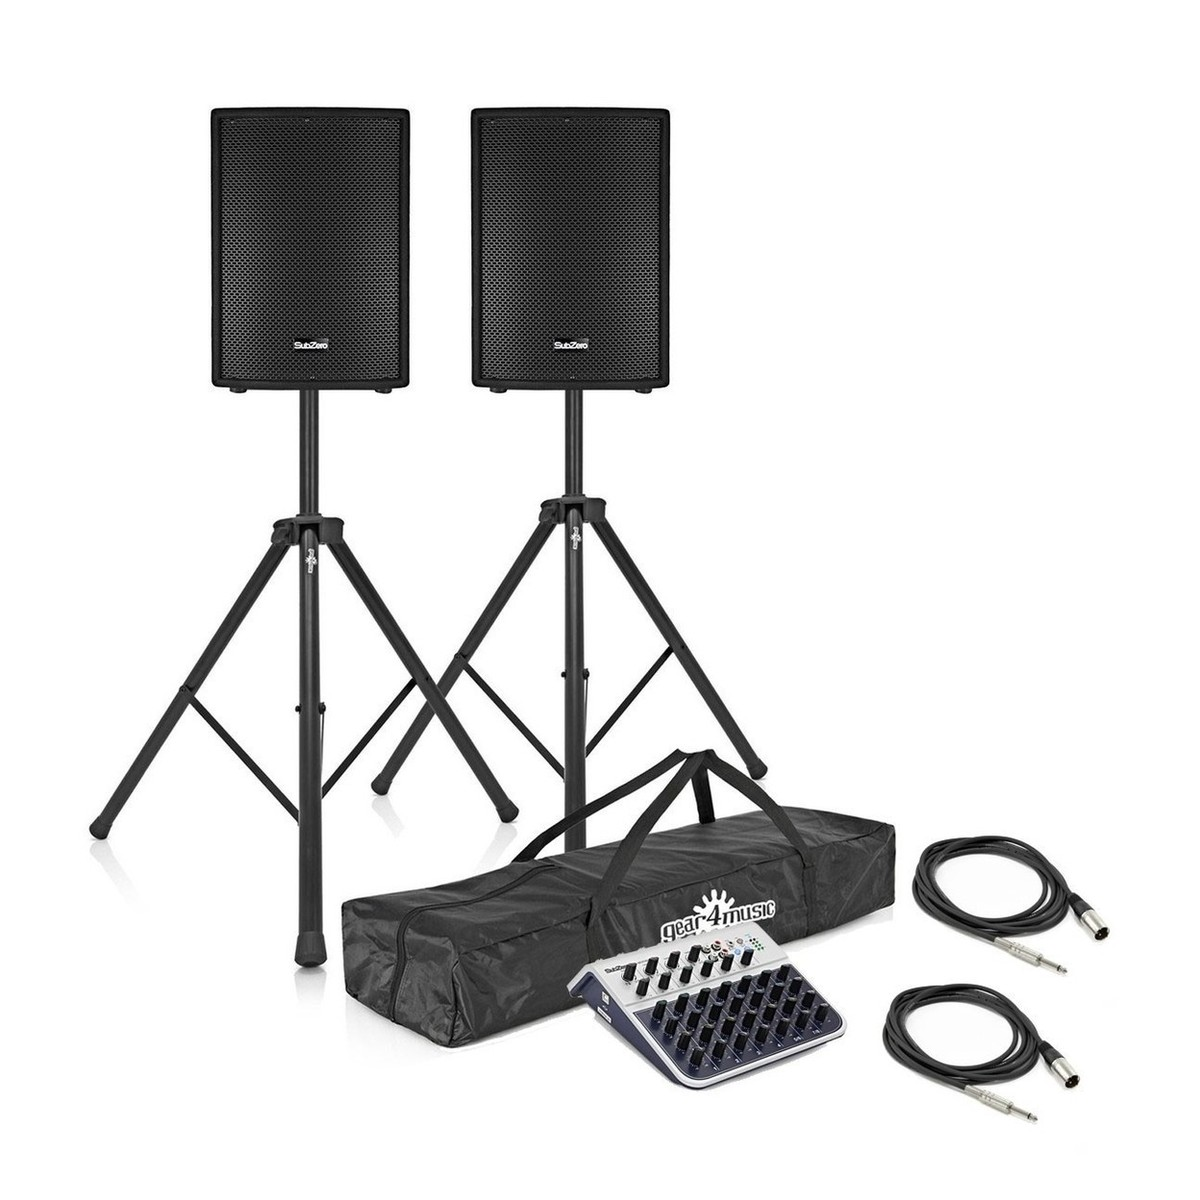 SubZero 700W 12'' Active PA System with Stands and Mixer